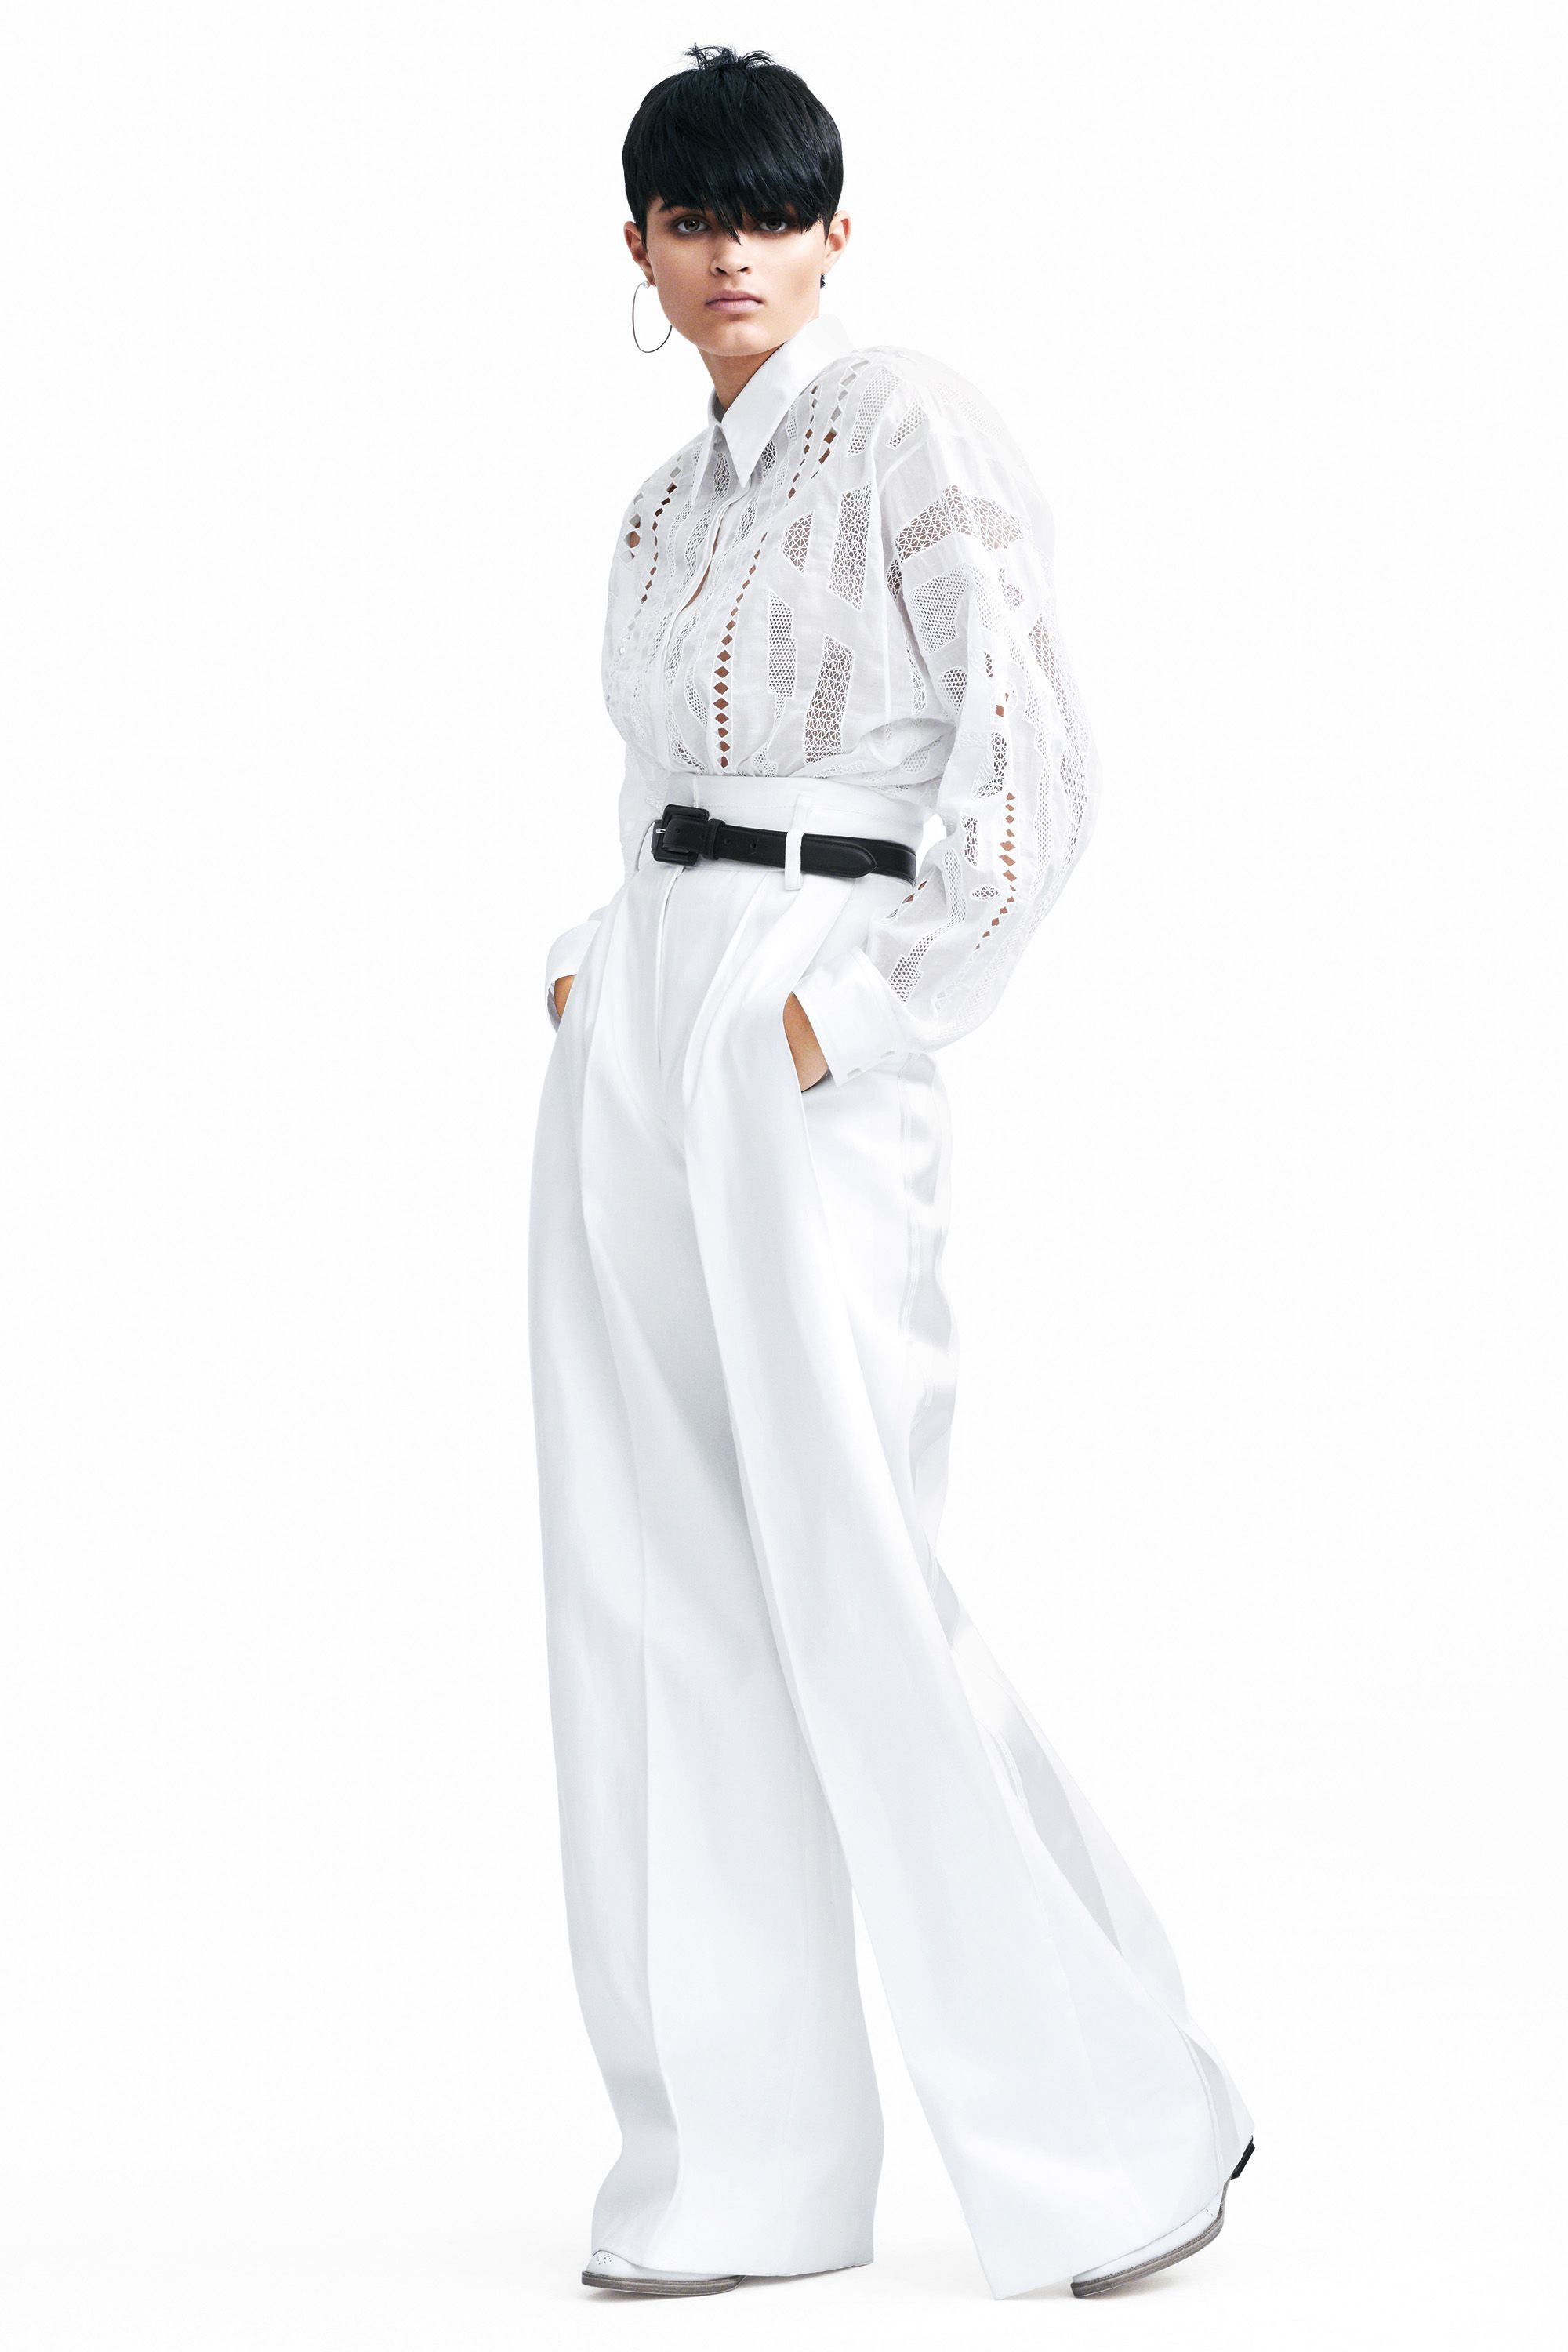 """<p>Keep it simple in a louche all-white look<span class=""""redactor-invisible-space"""">.</span></p><p><span class=""""redactor-invisible-space""""><strong data-redactor-tag=""""strong"""" data-verified=""""redactor"""">Hermès</strong> shirt, $12,600, pants, $2,950, and shoes, $1,900, <a href=""""http://www.hermes.com/index_us.html"""" target=""""_blank"""" data-tracking-id=""""recirc-text-link"""">hermes.com</a><span class=""""redactor-invisible-space"""">;</span><strong data-redactor-tag=""""strong"""" data-verified=""""redactor"""">Delfina Delettrez</strong> earrings, $1,550, <a href=""""http://www.matchesfashion.com/womens"""" target=""""_blank"""" data-tracking-id=""""recirc-text-link"""">matchesfashion.com</a>; <strong data-redactor-tag=""""strong"""" data-verified=""""redactor"""">Ralph Lauren Collection</strong> belt, $295, <a href=""""http://www.ralphlauren.com/home/index.jsp?ab=Geo_iUS_rUS_dUS"""" target=""""_blank"""" data-tracking-id=""""recirc-text-link"""">ralphlauren.com</a>.</span></p><p><span class=""""redactor-invisible-space""""><strong data-redactor-tag=""""strong"""" data-verified=""""redactor"""">BEAUTY BAZAAR: </strong><a href=""""https://www.walgreens.com/store/c/pantene-pro-v-smooth-and-sleek-3-minute-miracle-deep-conditioner/ID=prod6306759-product?ext=gooPLA_-_Beauty&pla&adtype=pla&kpid=sku6259382&sst=d75bf2f6-5663-4c46-909d-e82c609fcf16"""" target=""""_blank"""" data-tracking-id=""""recirc-text-link"""">Pantene 3 Minute Miracle Smooth & Sleek Deep Conditioner</a> leaves hair super lustrous ($4).<span class=""""redactor-invisible-space""""></span><br></span></p>"""